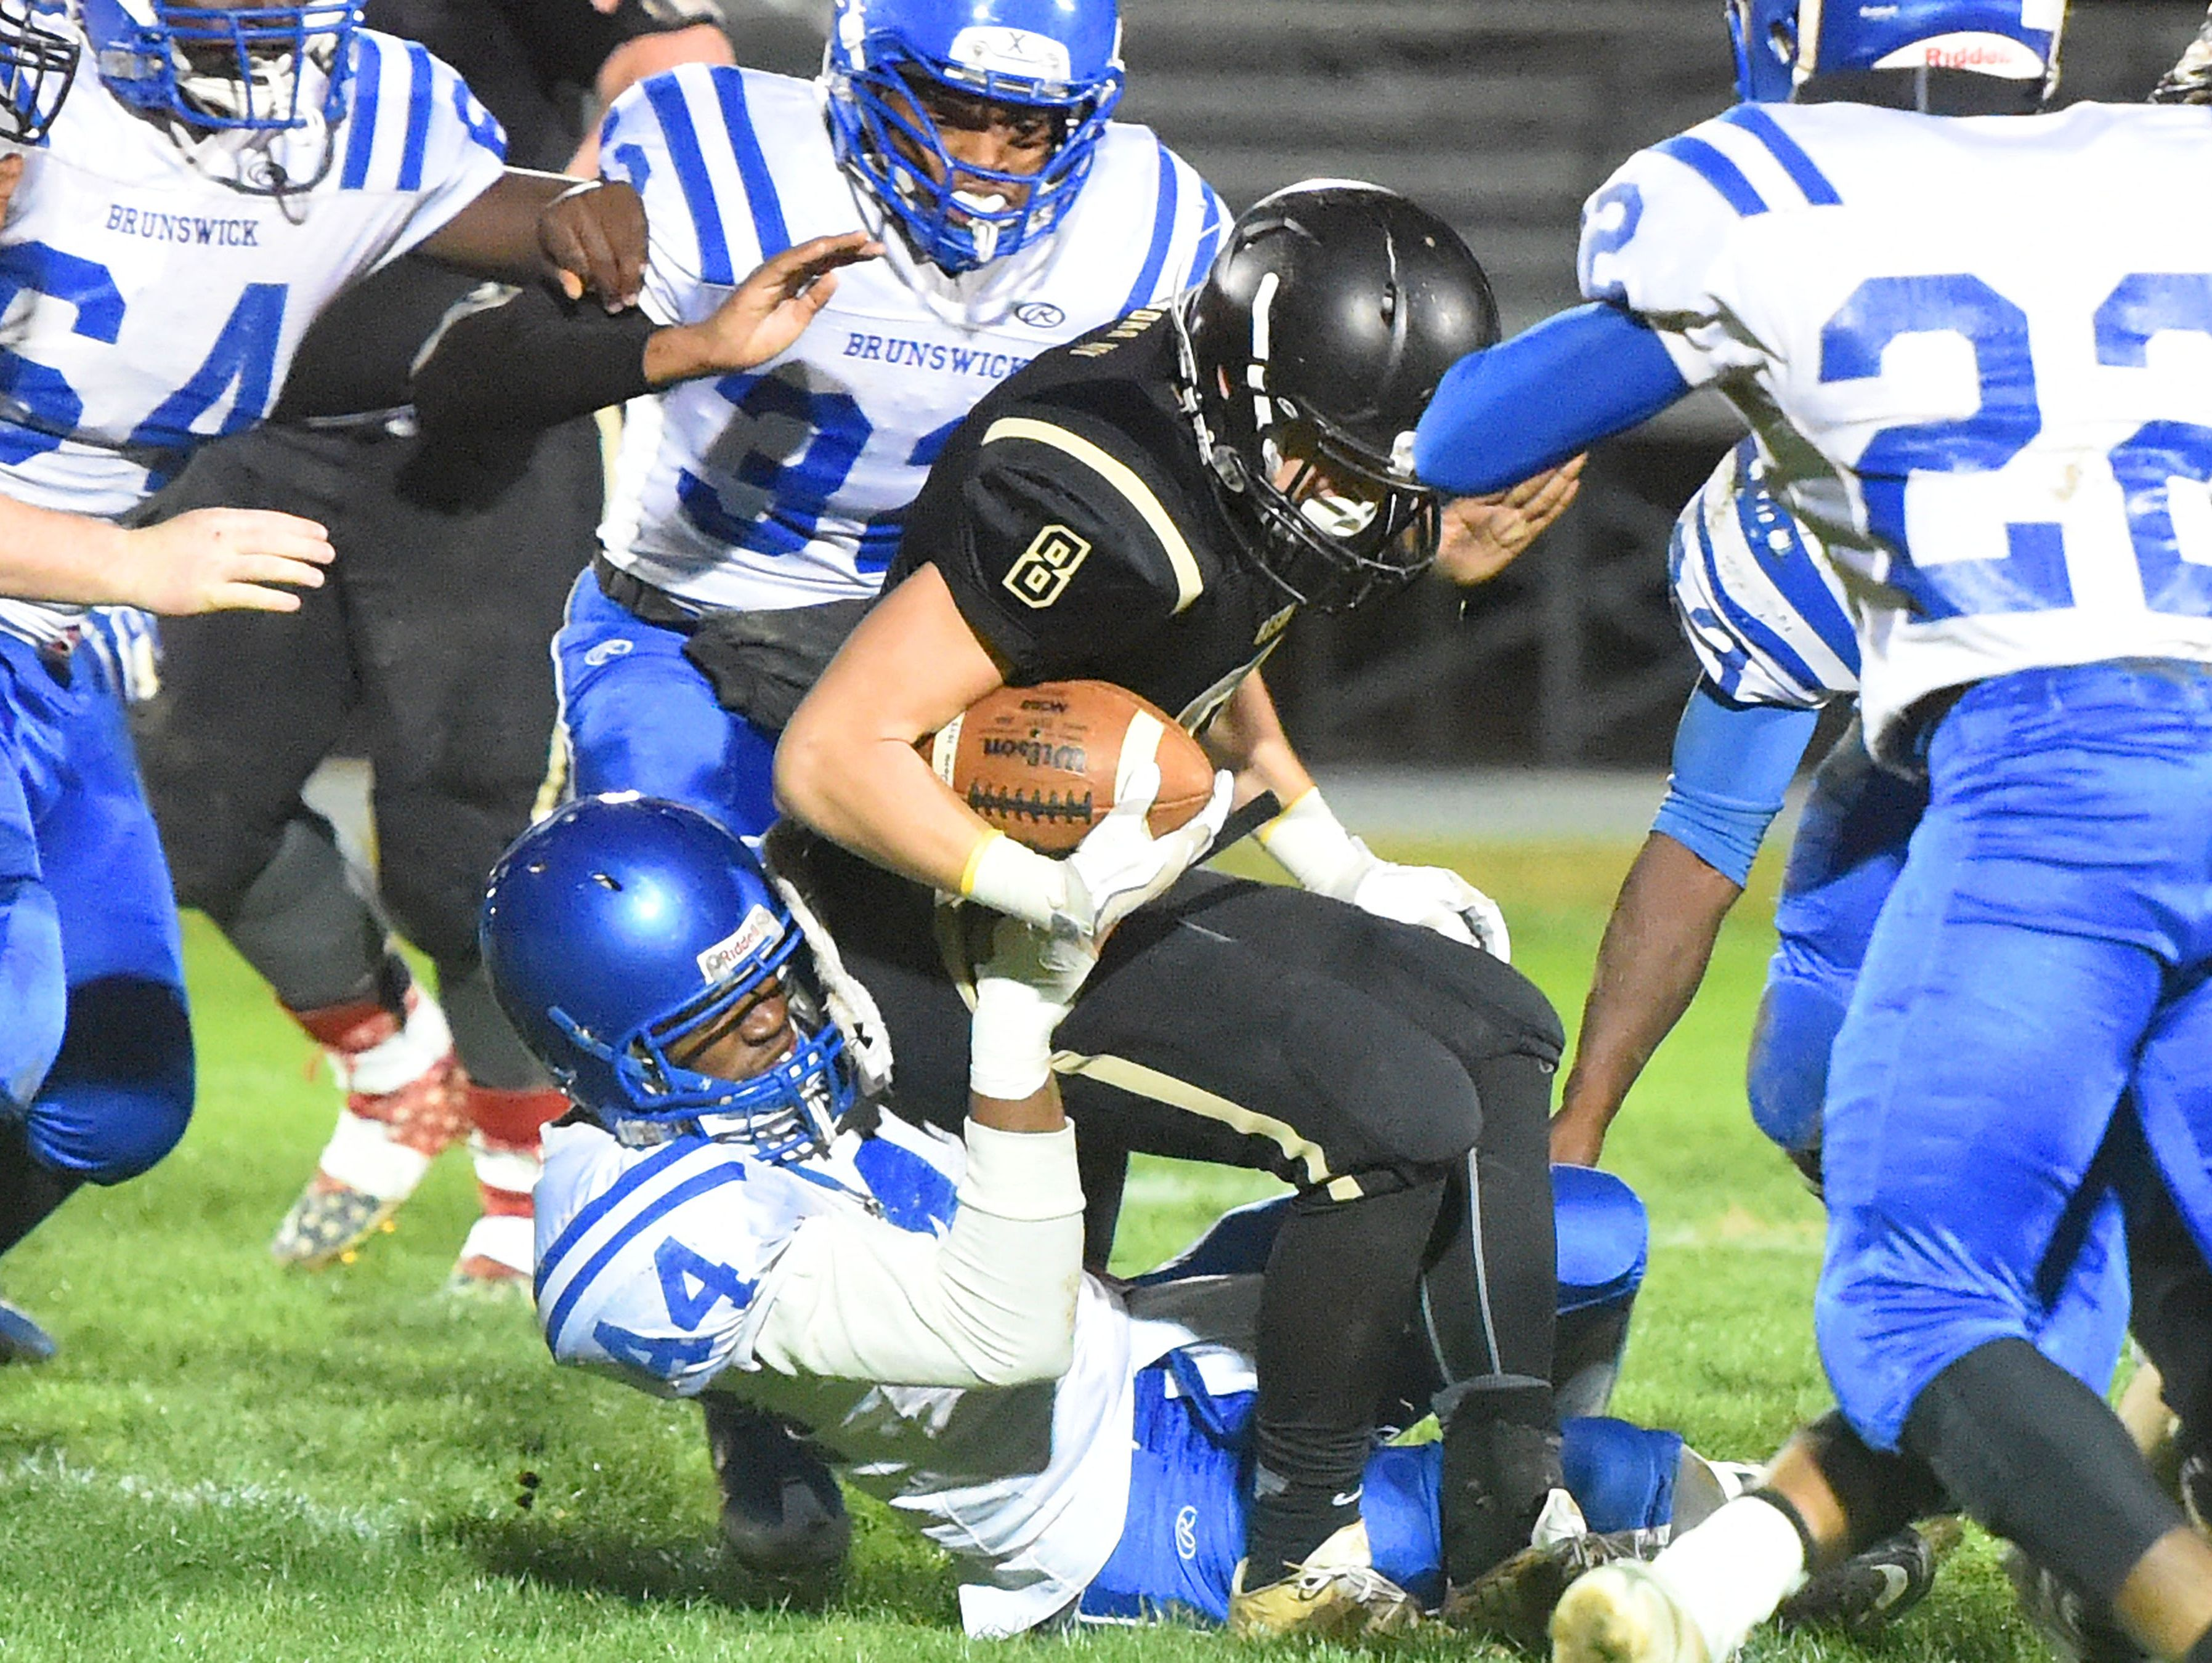 Buffalo Gap's Carter Rivenburg struggles against Brunswick's Marquis Garner who drags him down during a football game played in Swoope on Oct. 27, 2016.